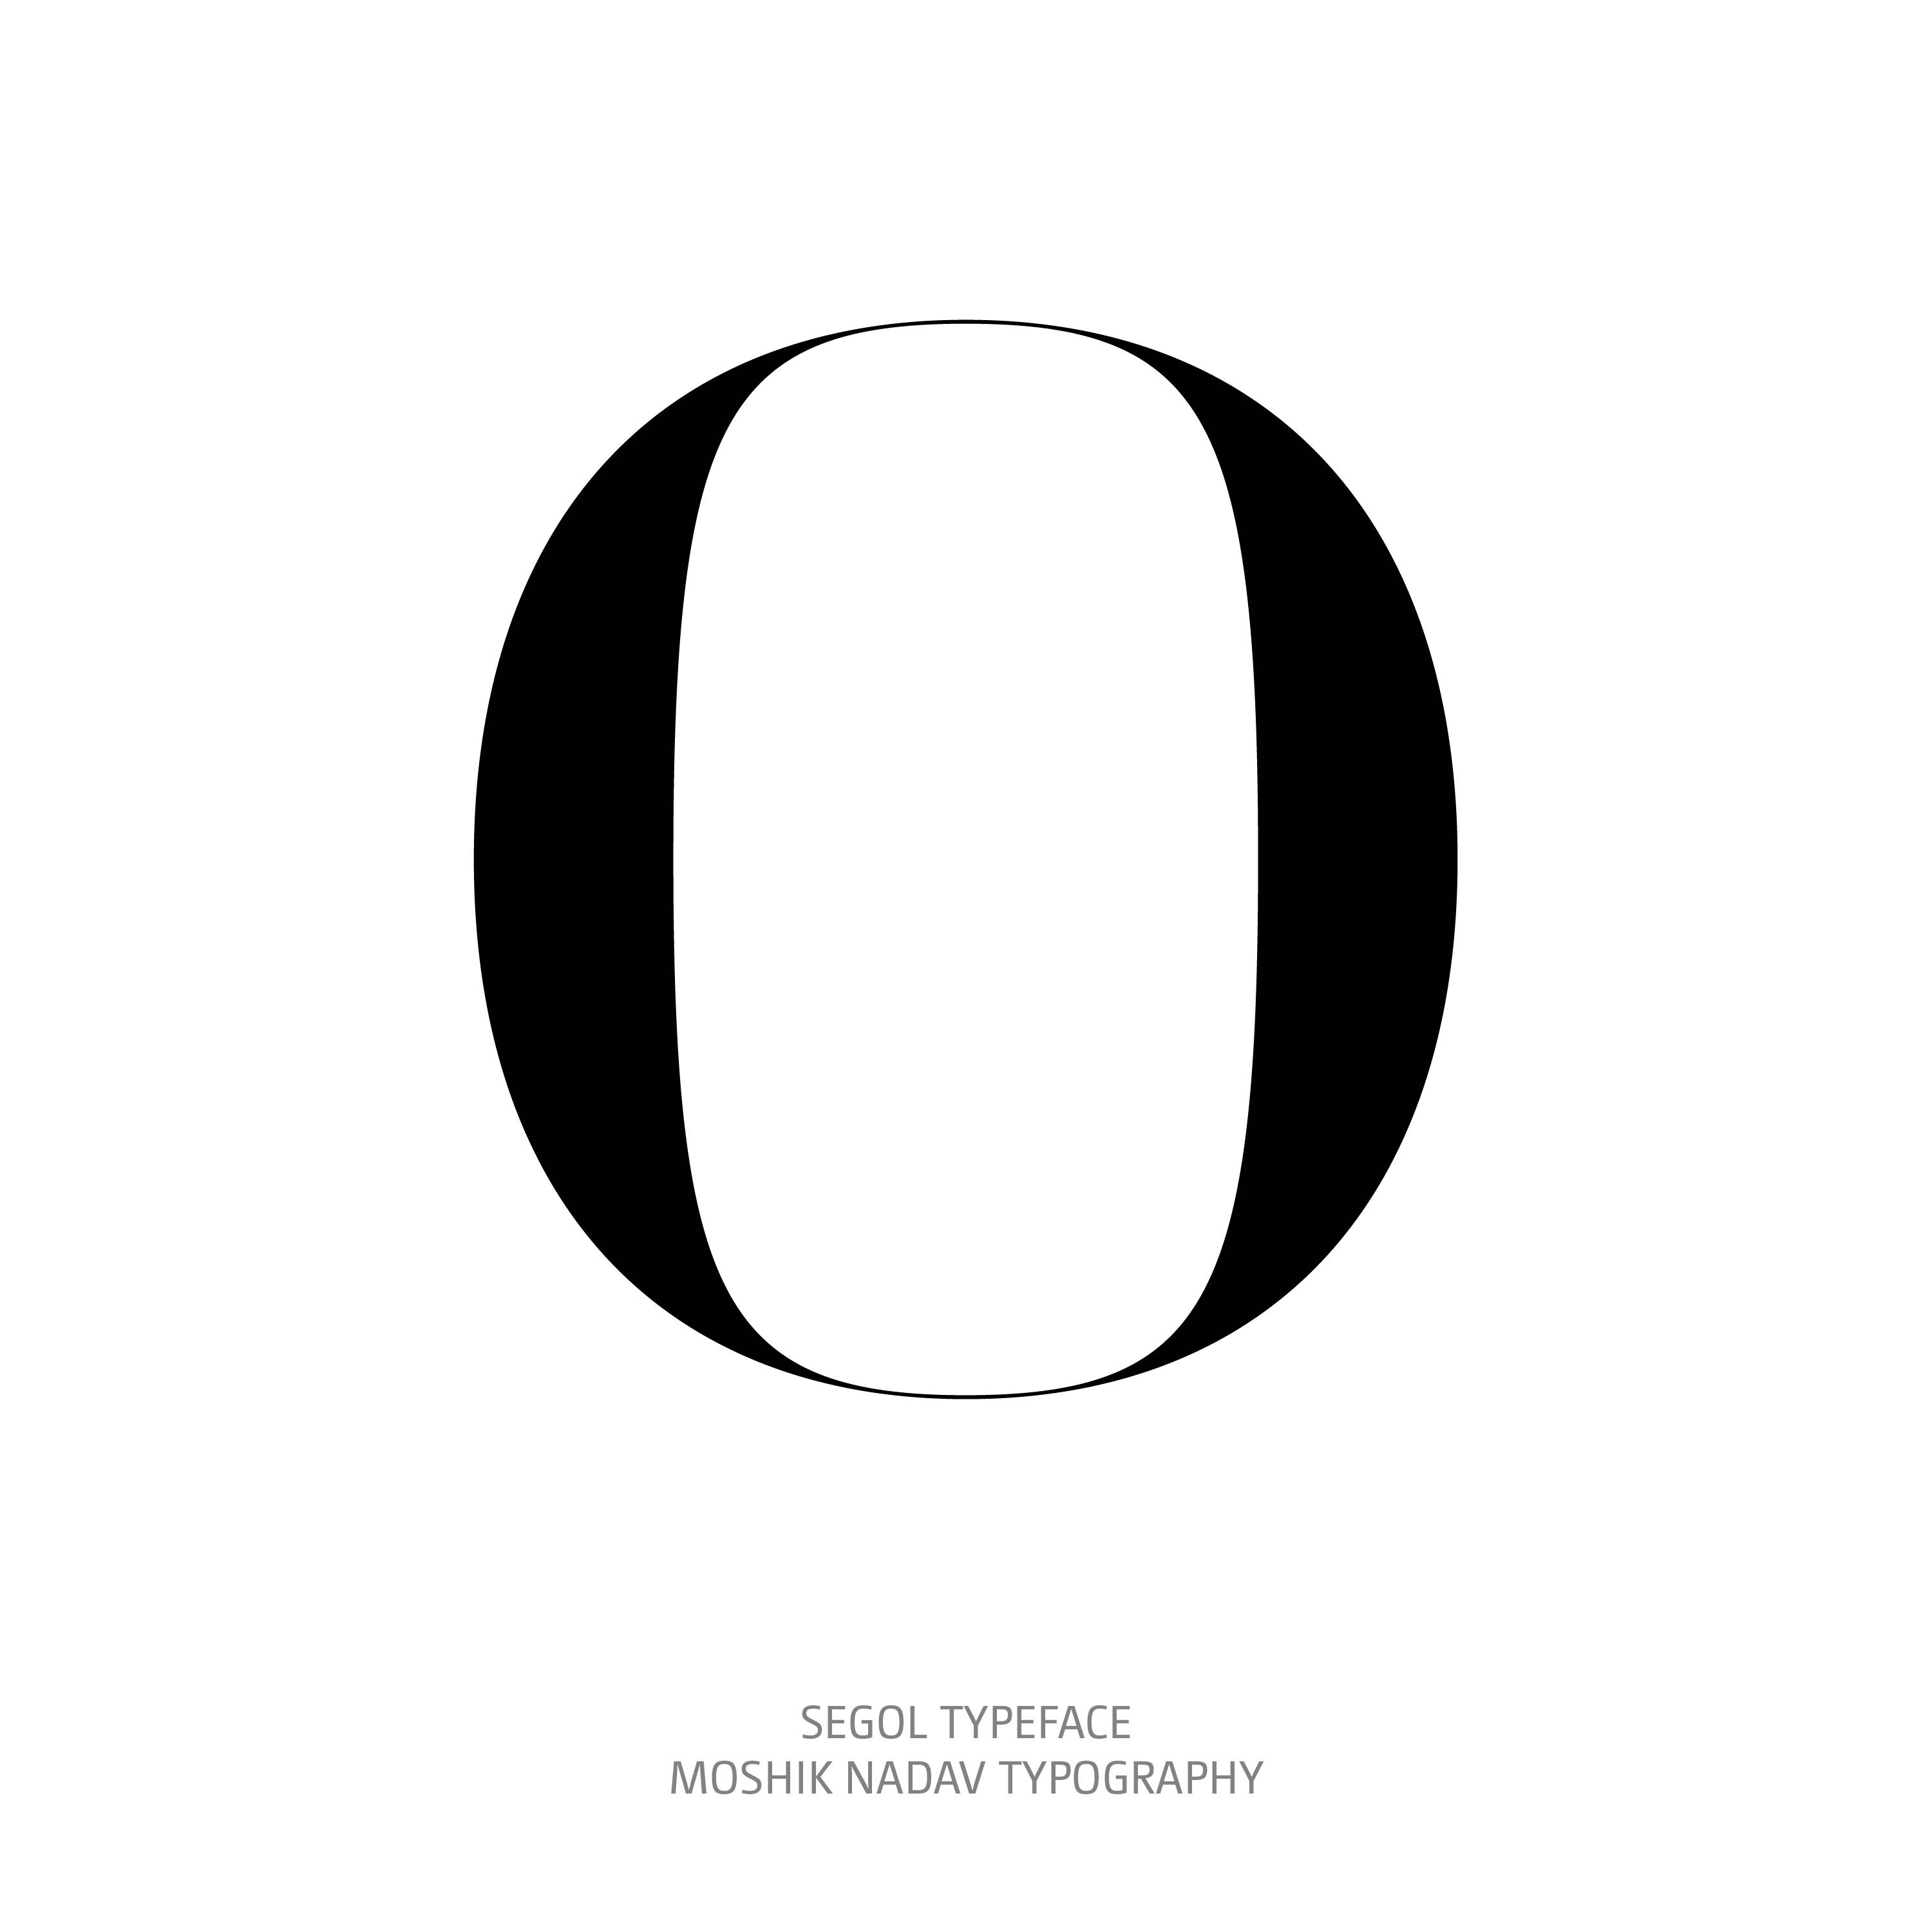 Segol Typeface O The Ultimate Font For Fashion Typography and sexy logos